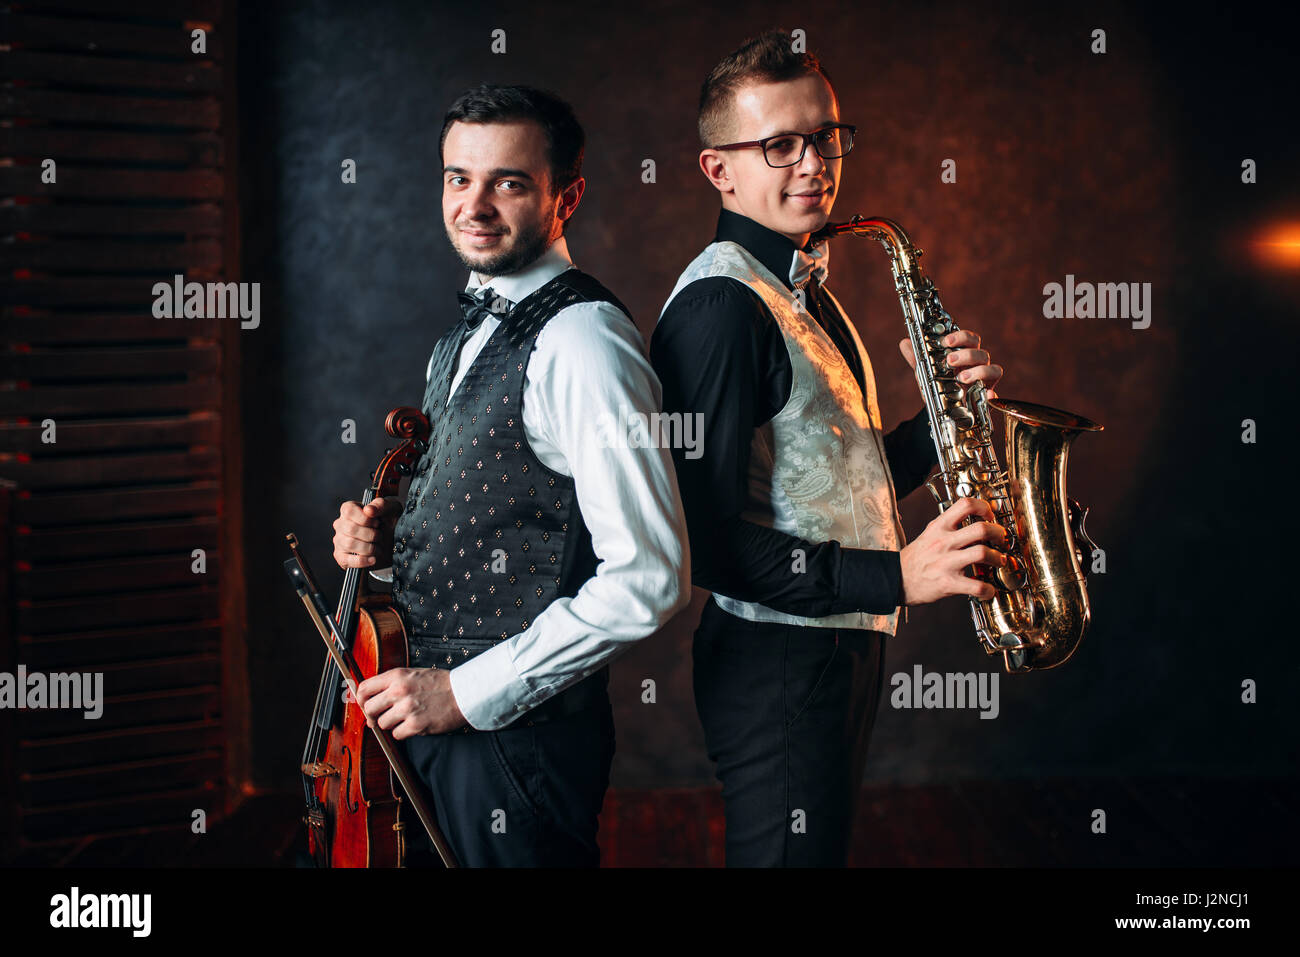 Saxophonist with sax and violinst with violin musical duet. Jazz-man and fiddler - Stock Image